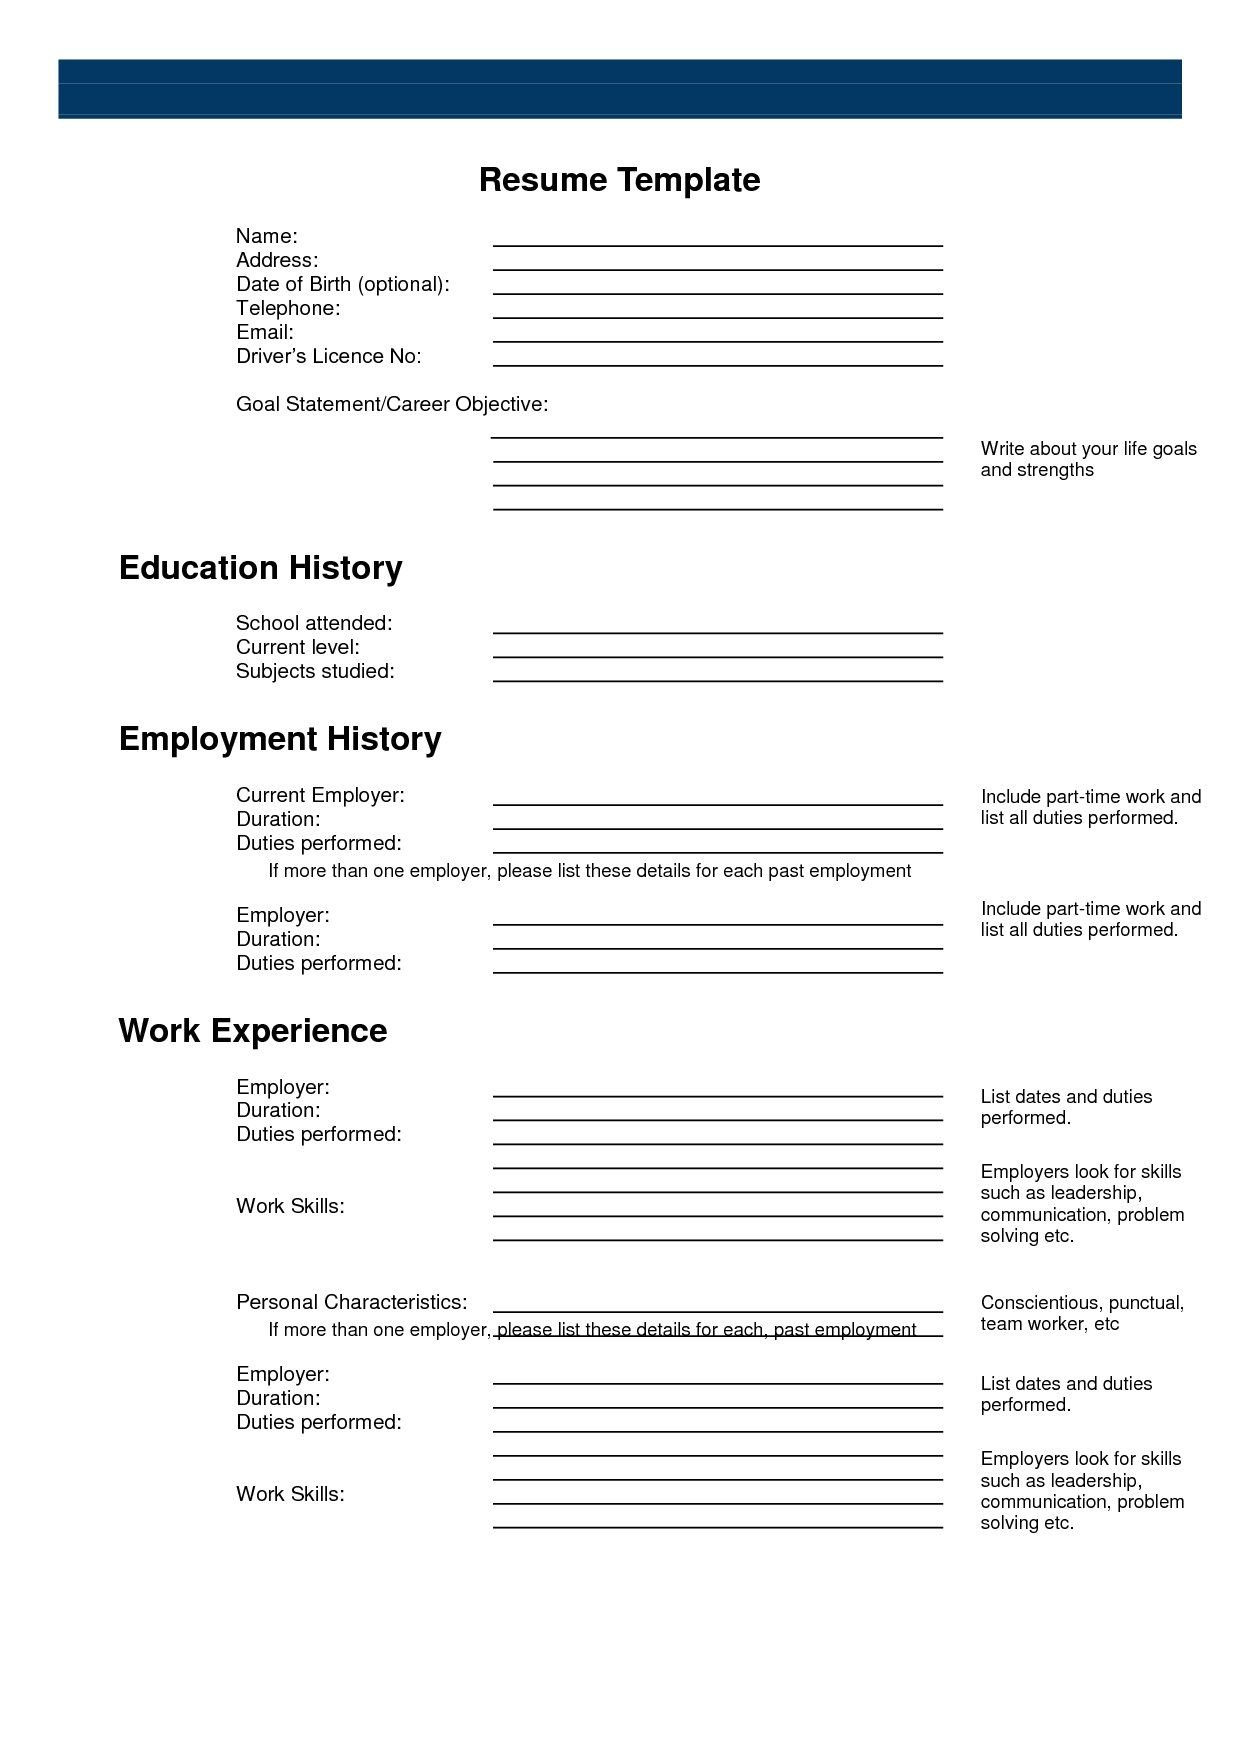 free printable resume templates blank sample template website pictures pin - Free Printable Resume Templates Blank